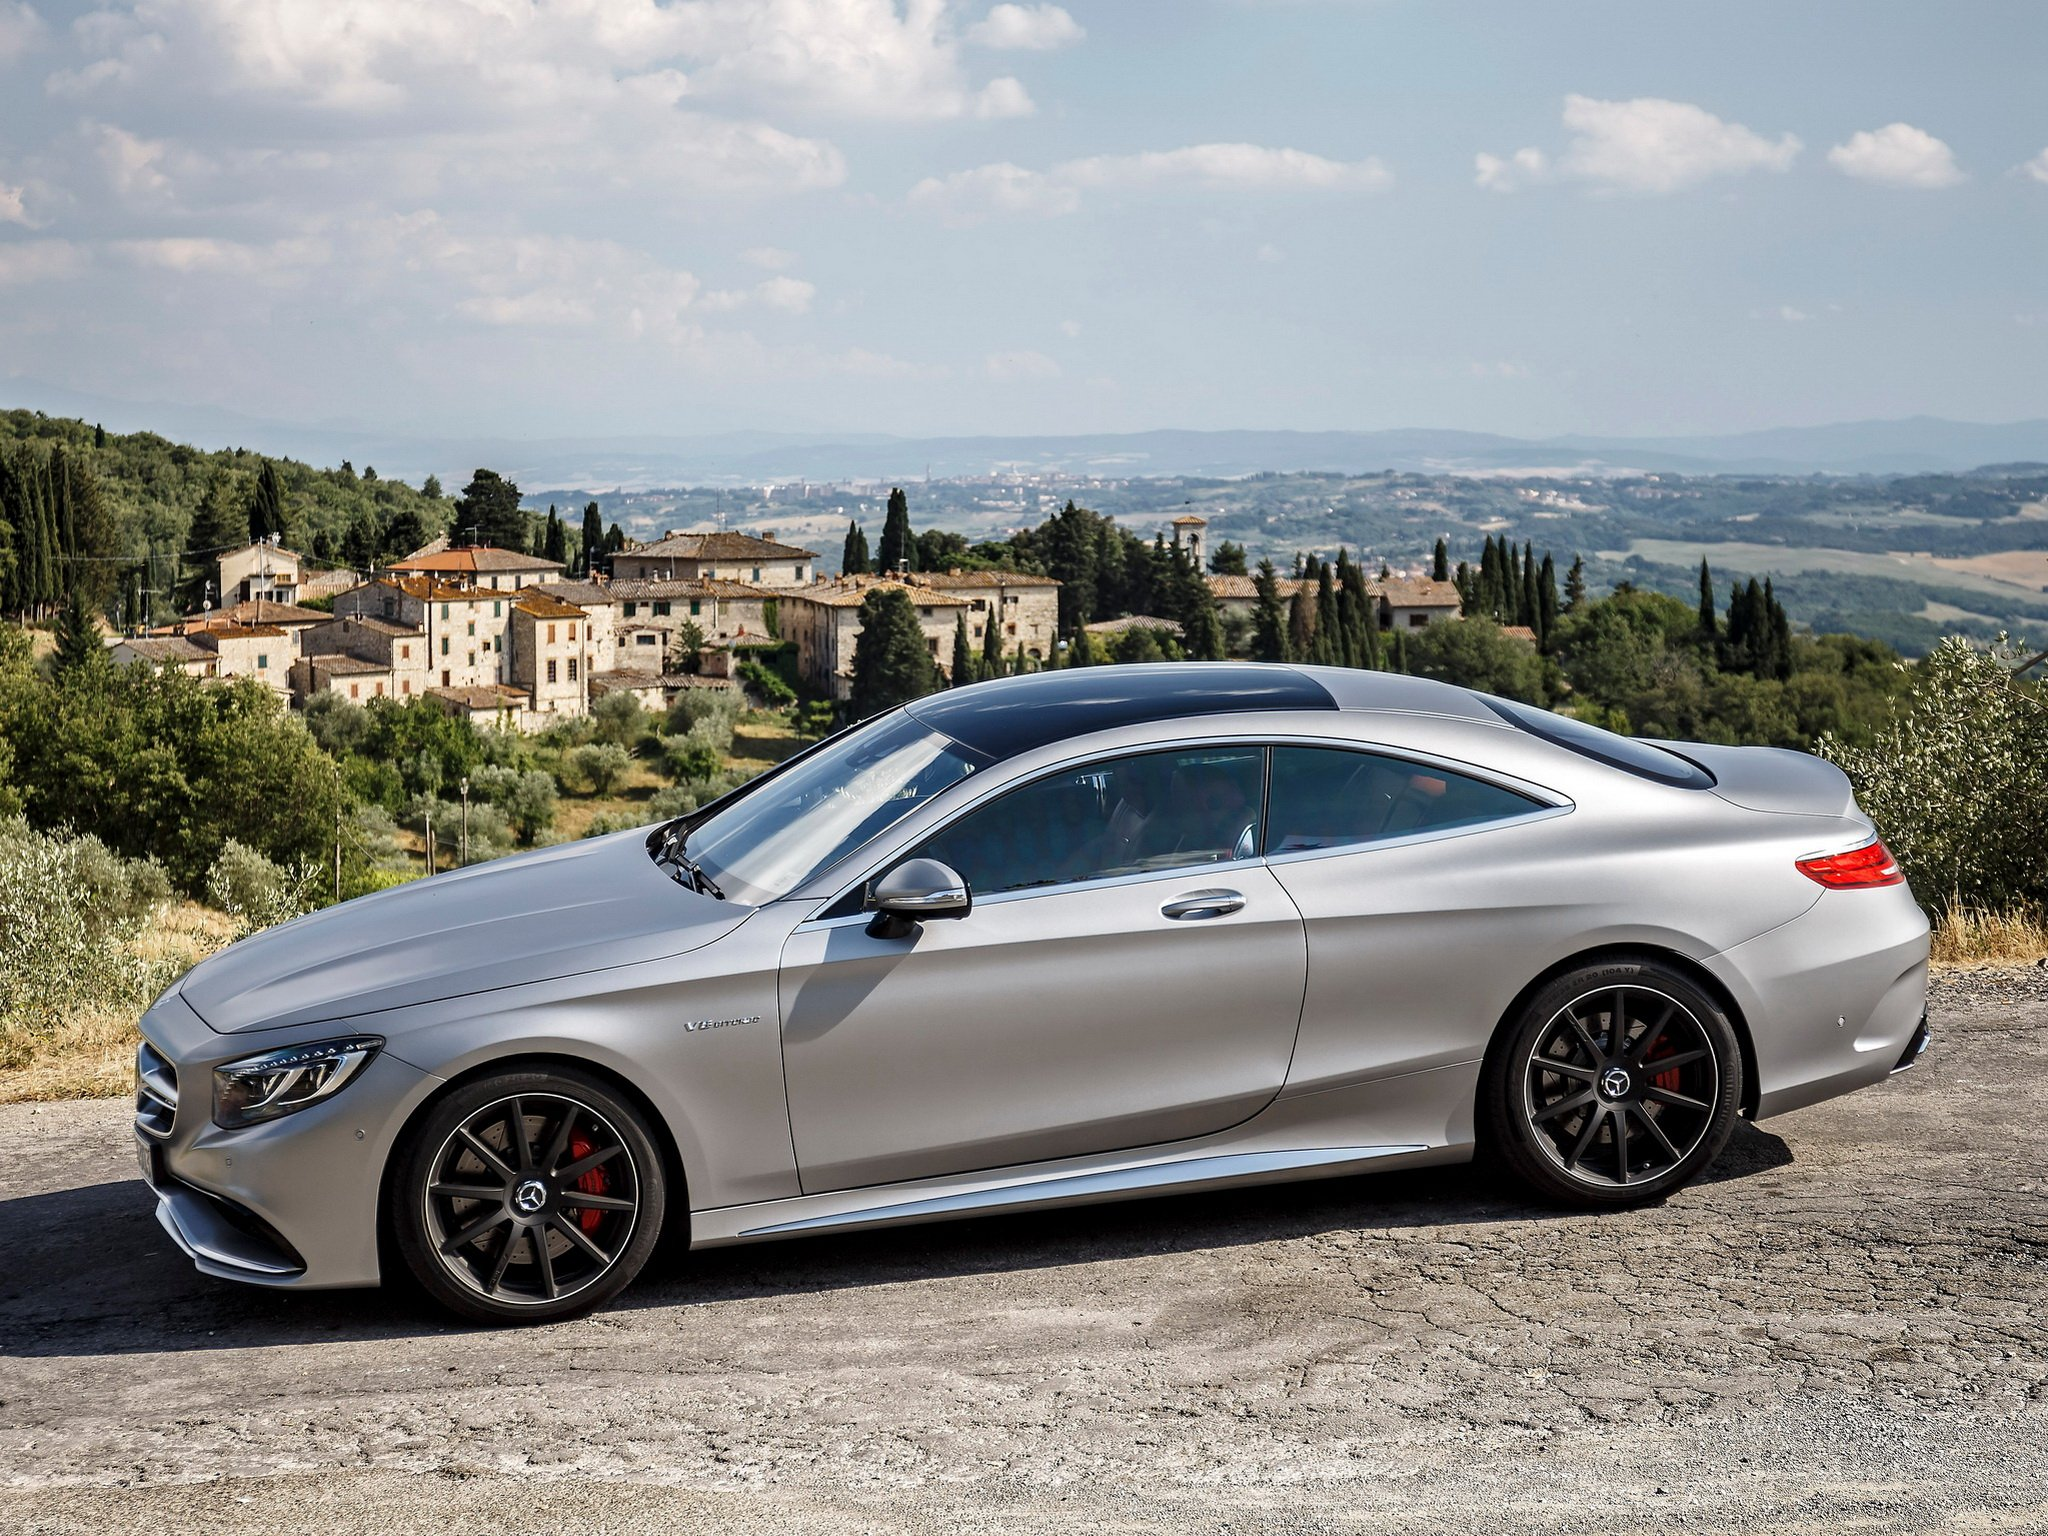 S 63 Amg Wallpaper: 2014 Mercedes Benz S63 AMG Coupe C217 F Wallpaper